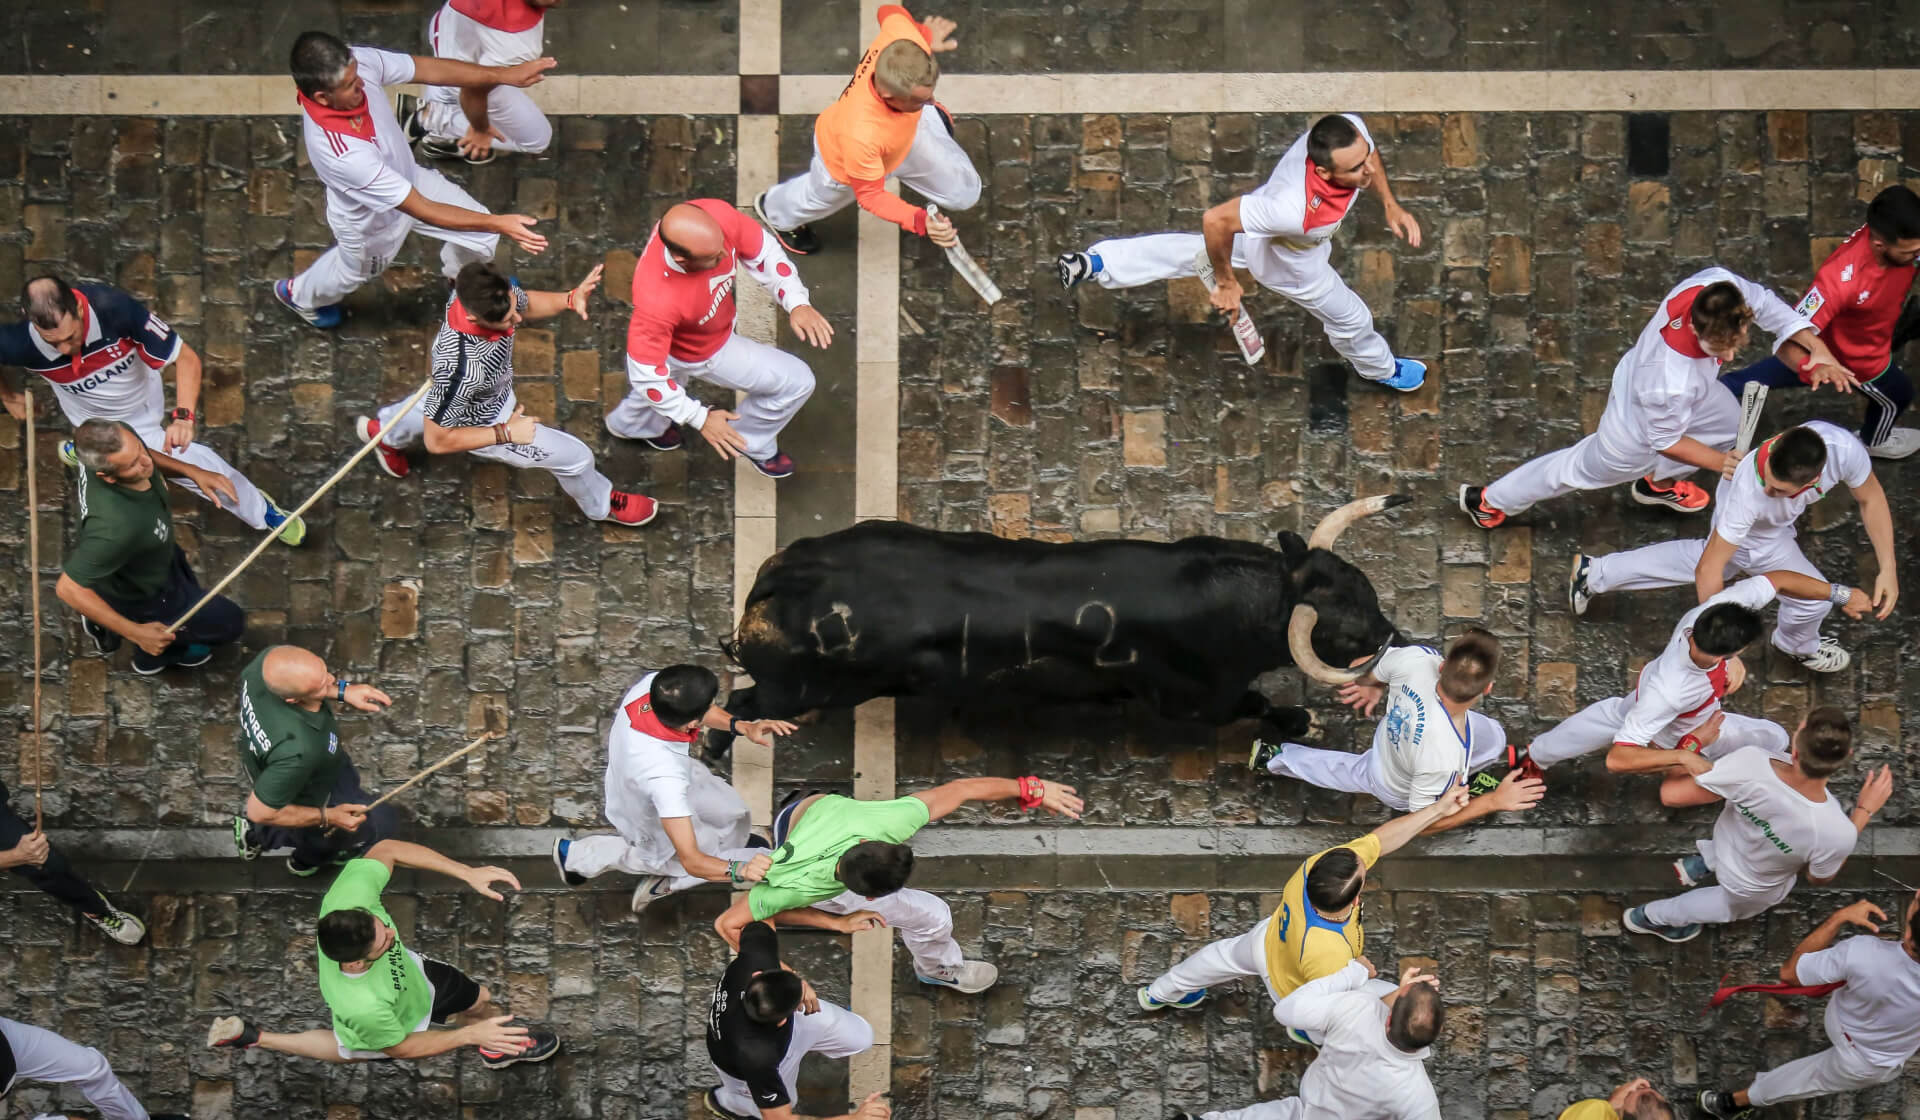 Aerial view of men dressed in red and white running with and being chased by a black bull in Pamplona, Spain